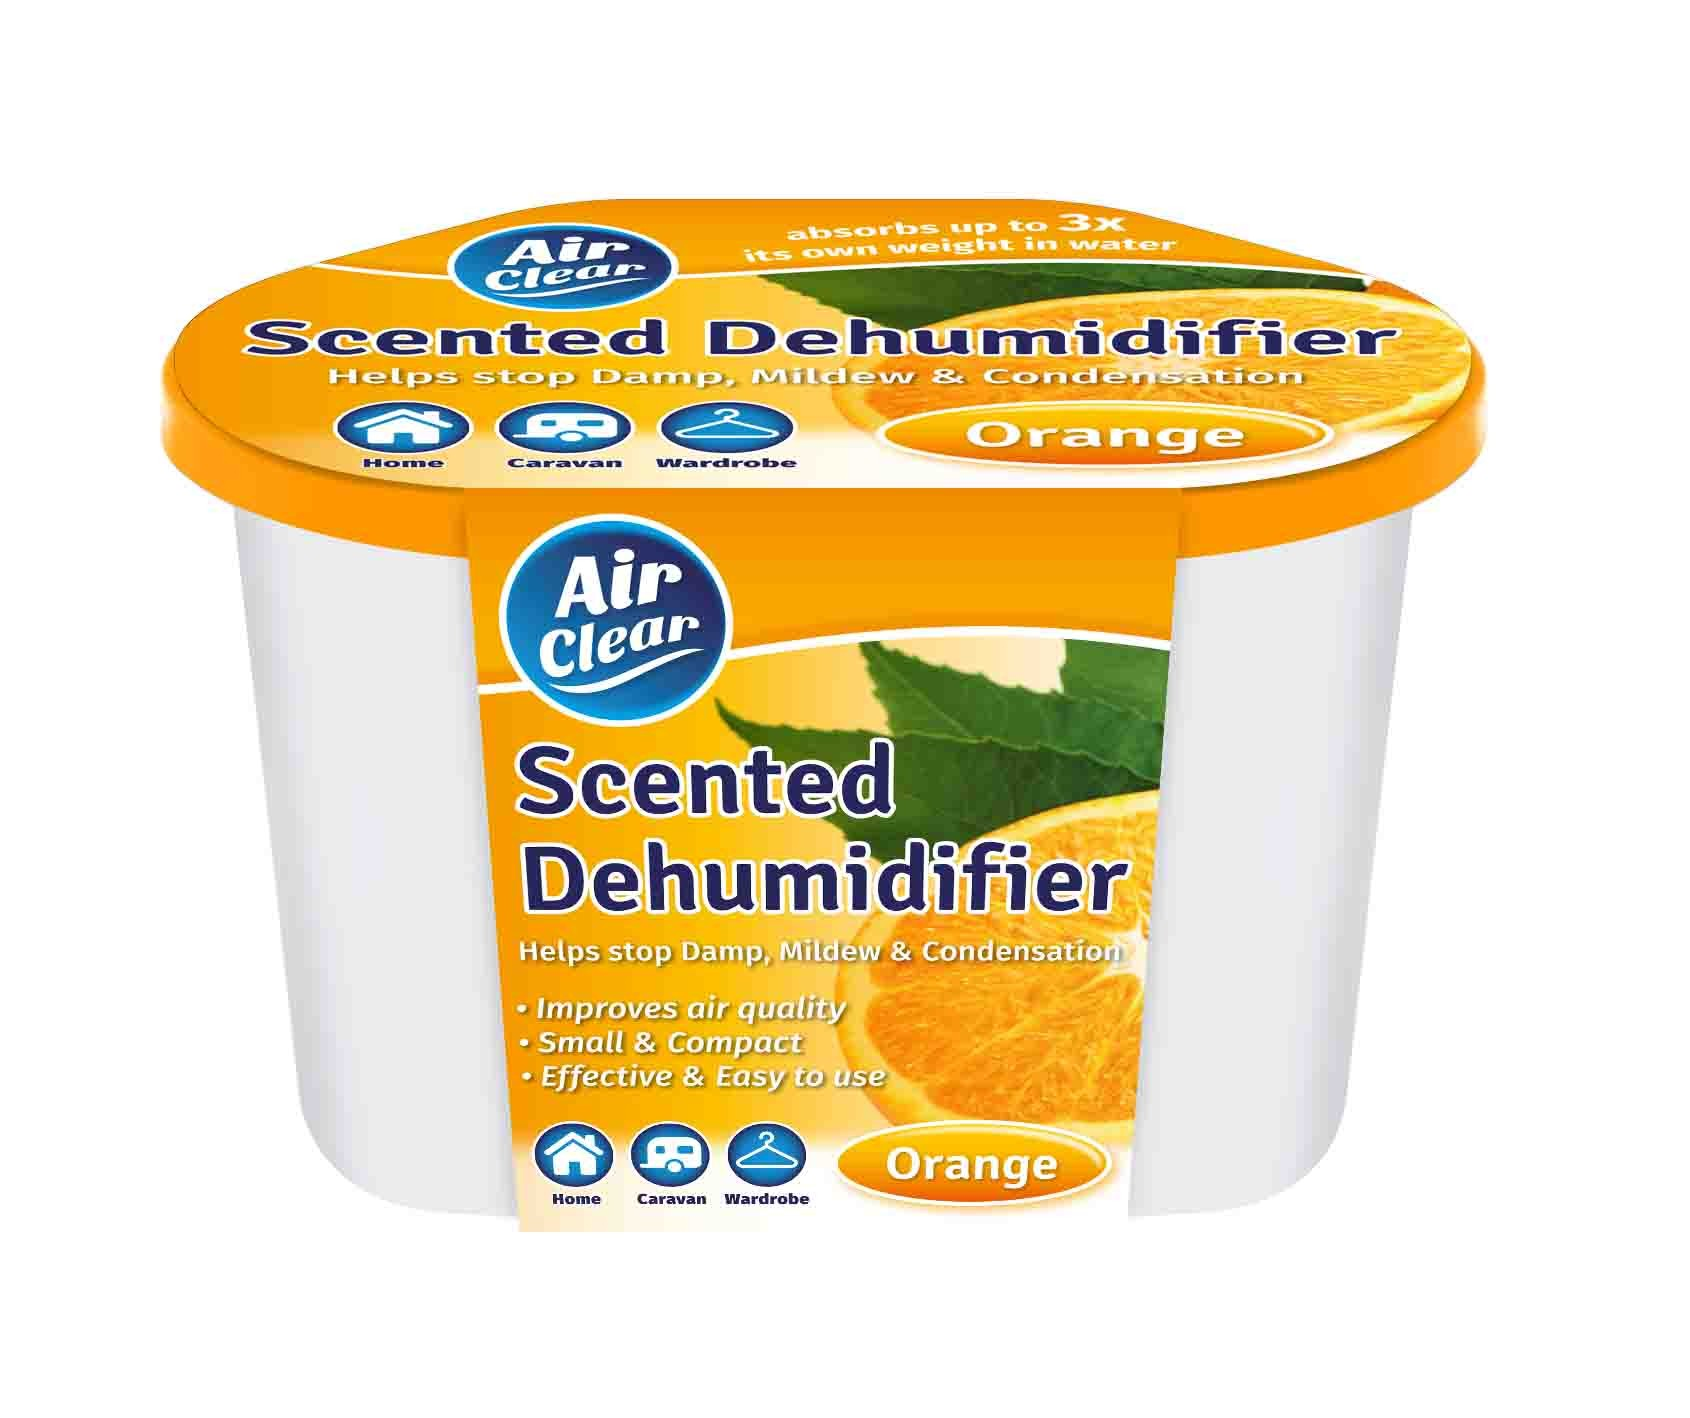 SCENTED DEHUMIDIFIER